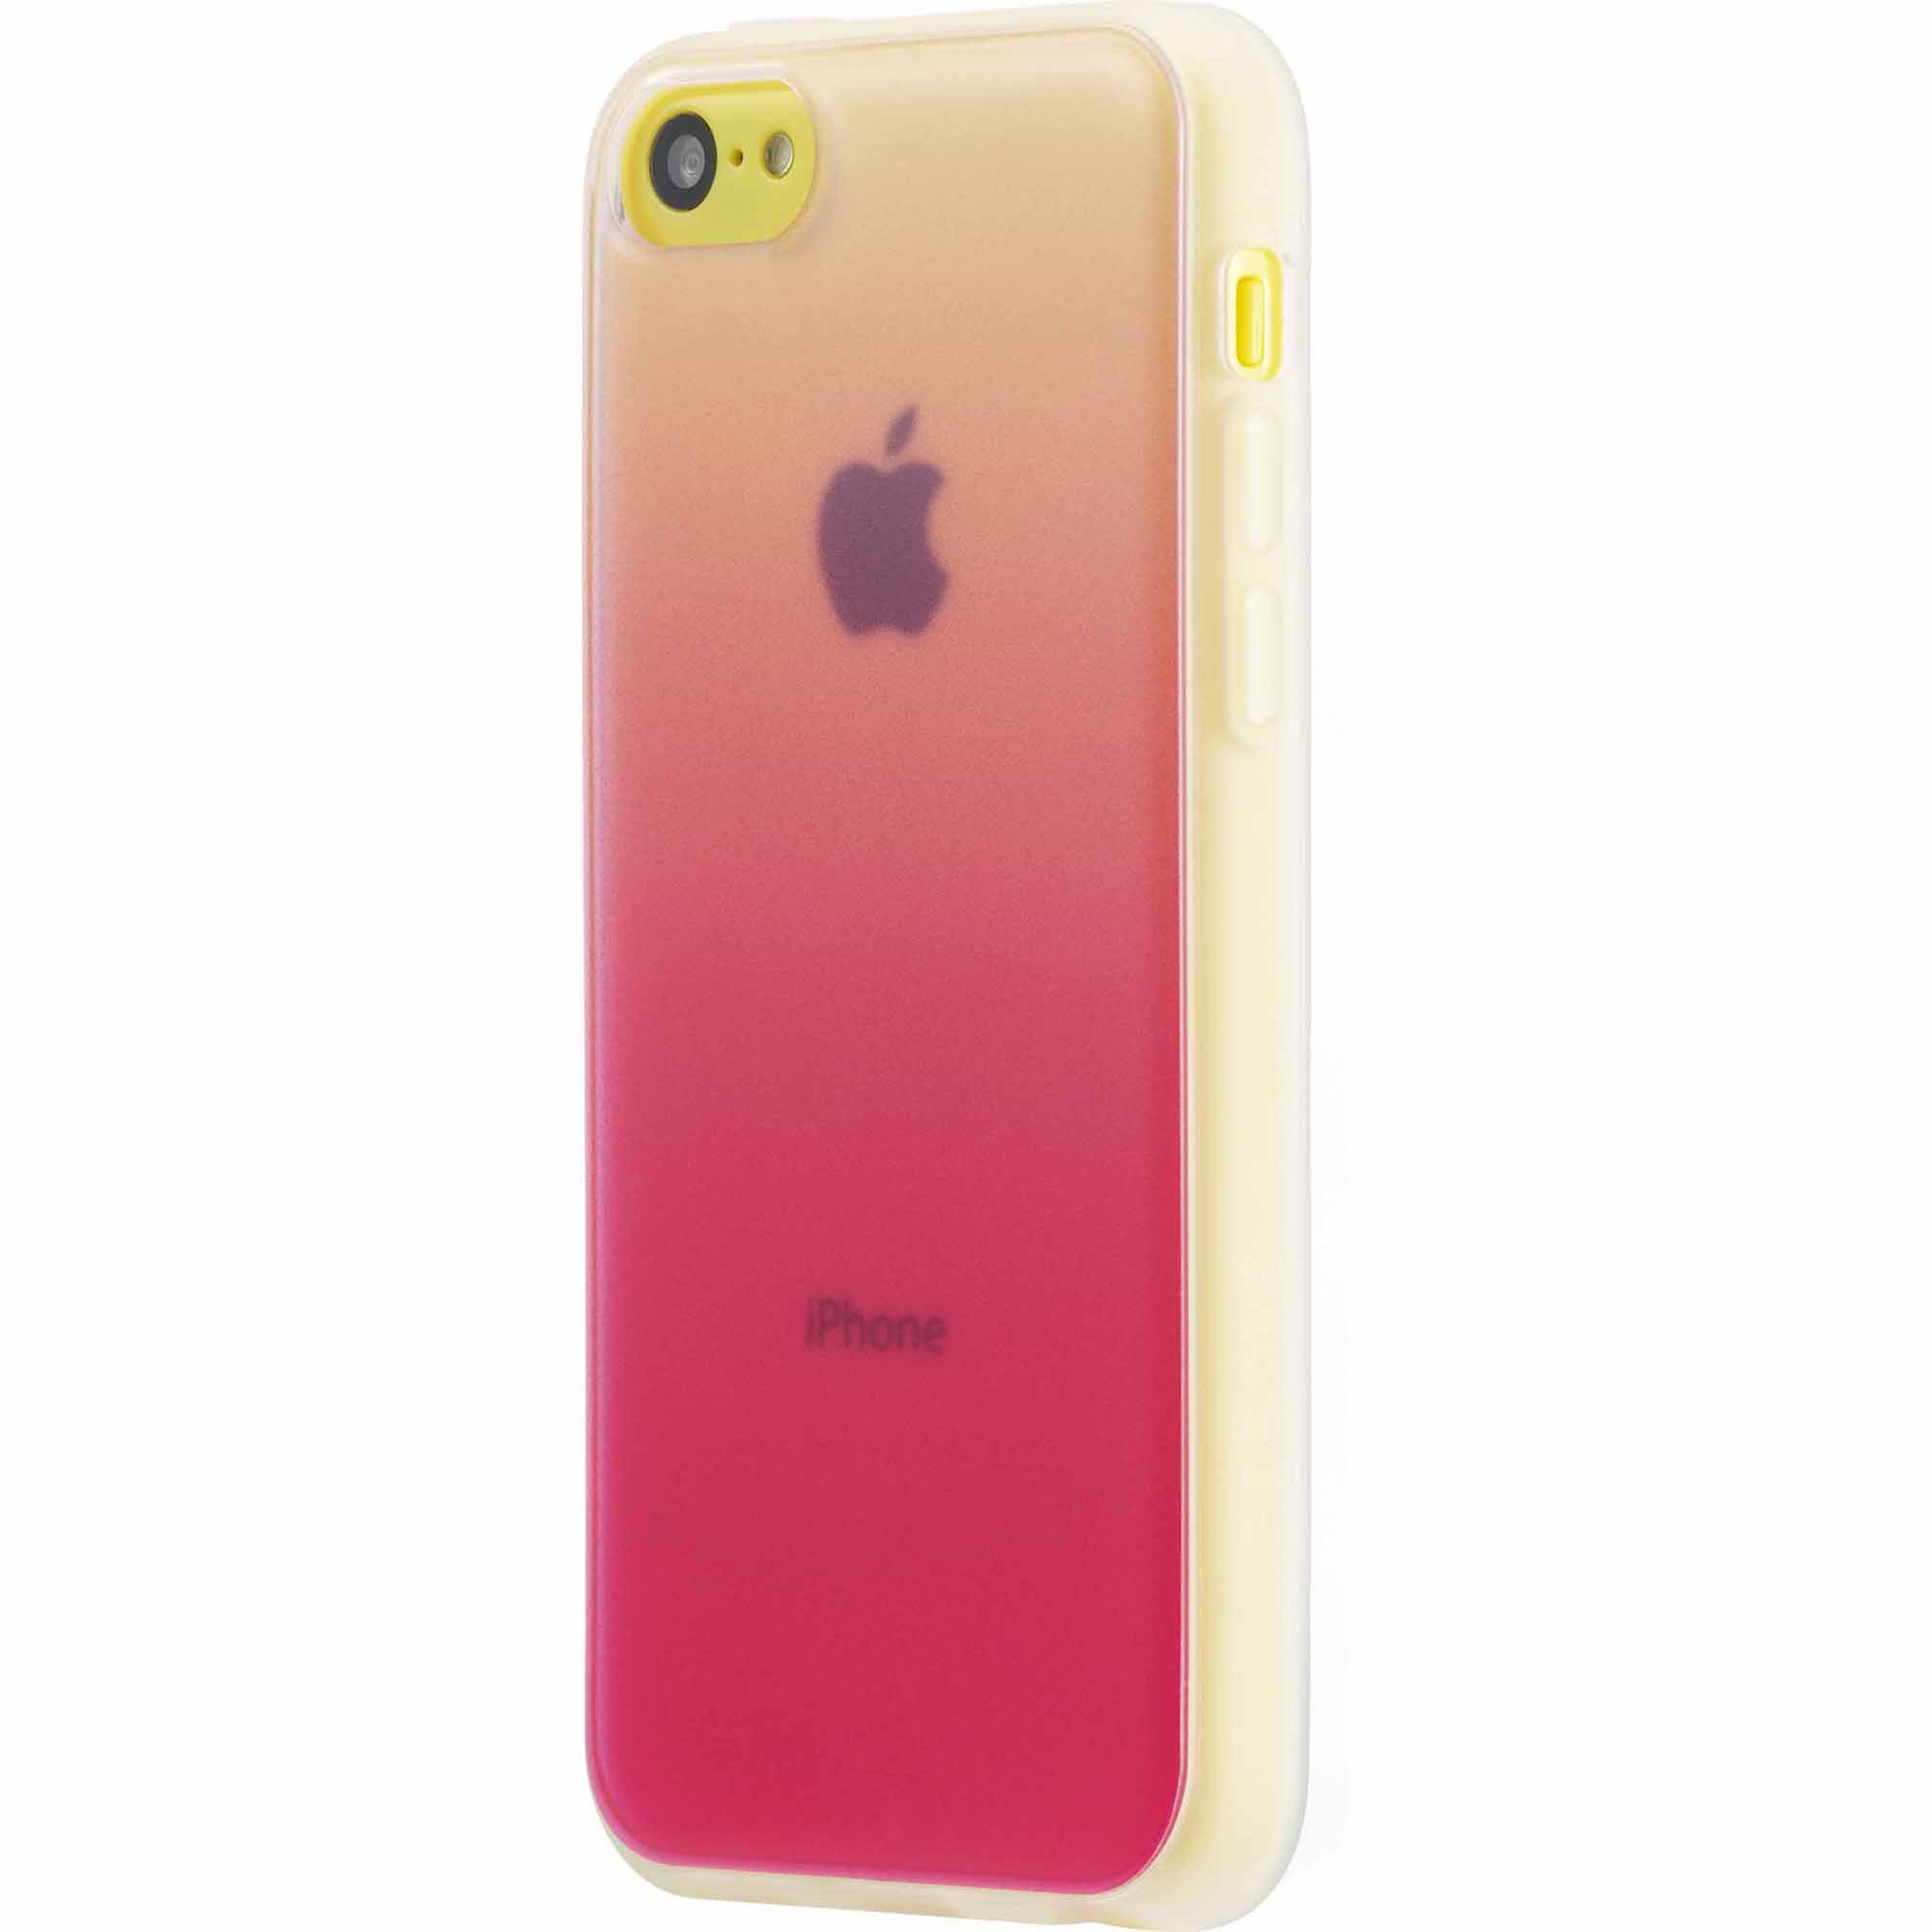 Agent 18 ShockSlim Case for iPhone 5c - Pink Ombre